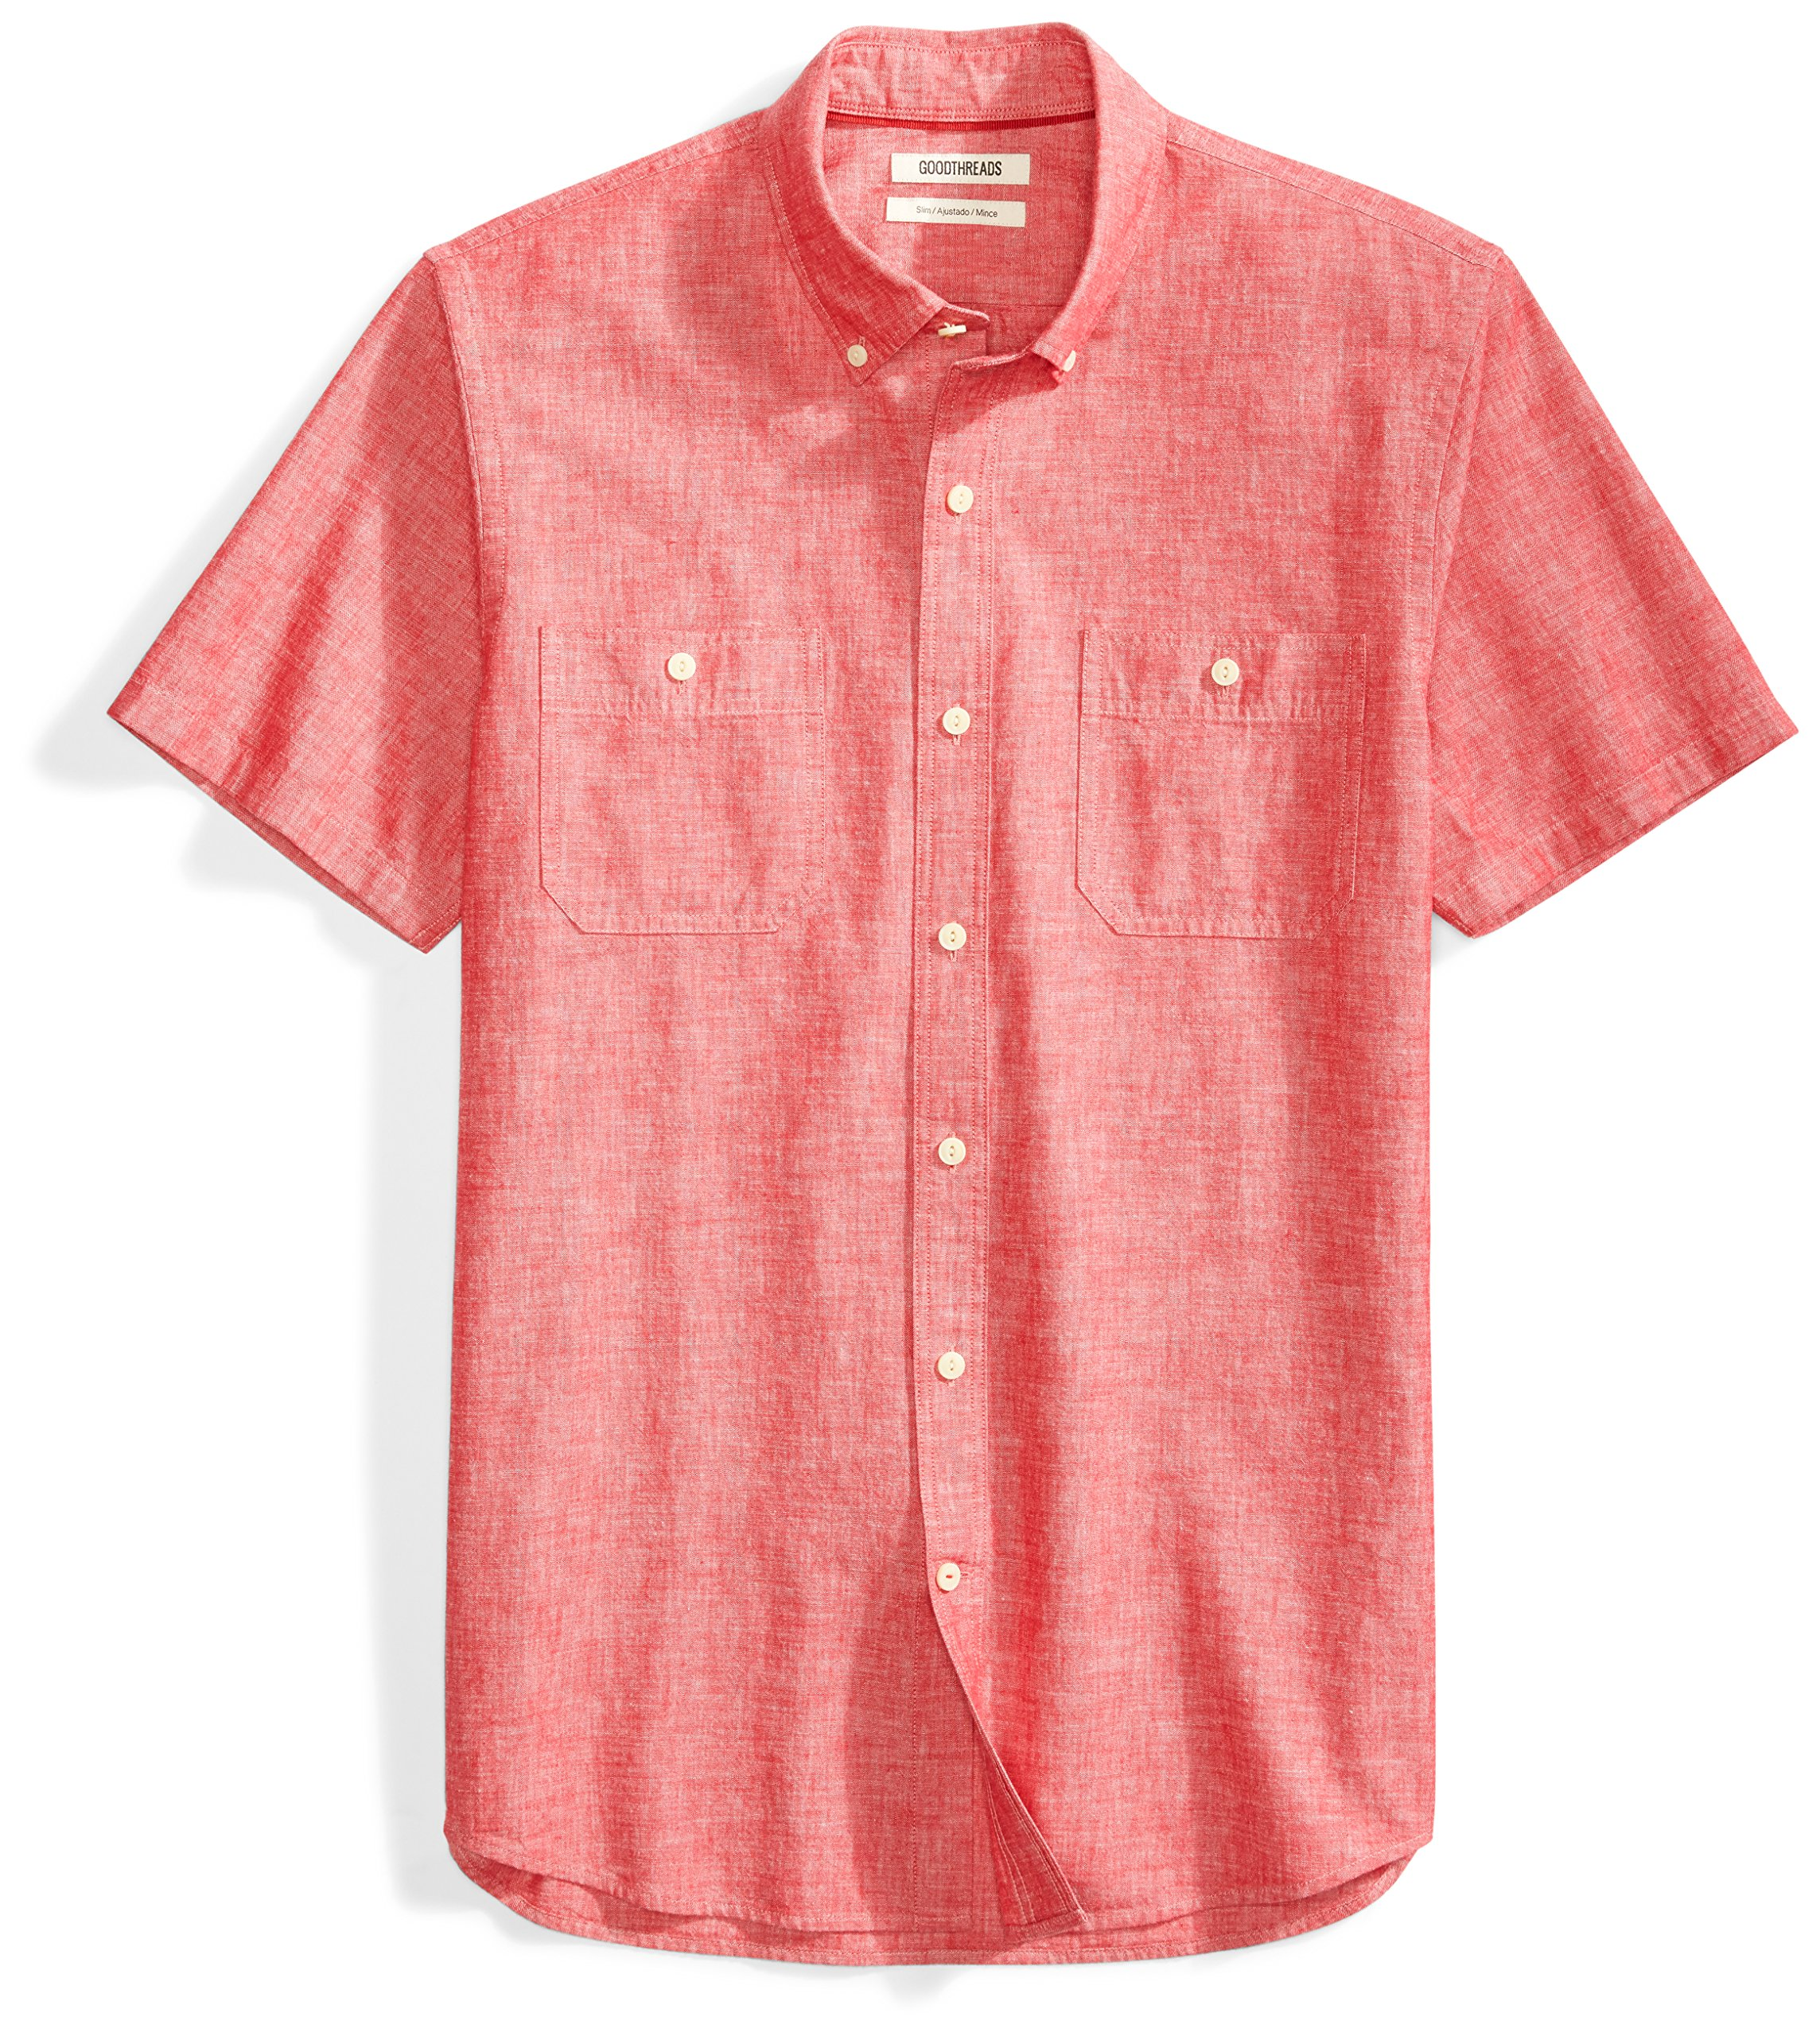 Goodthreads Men's Slim-Fit Short-Sleeve Chambray Shirt, Red, Large